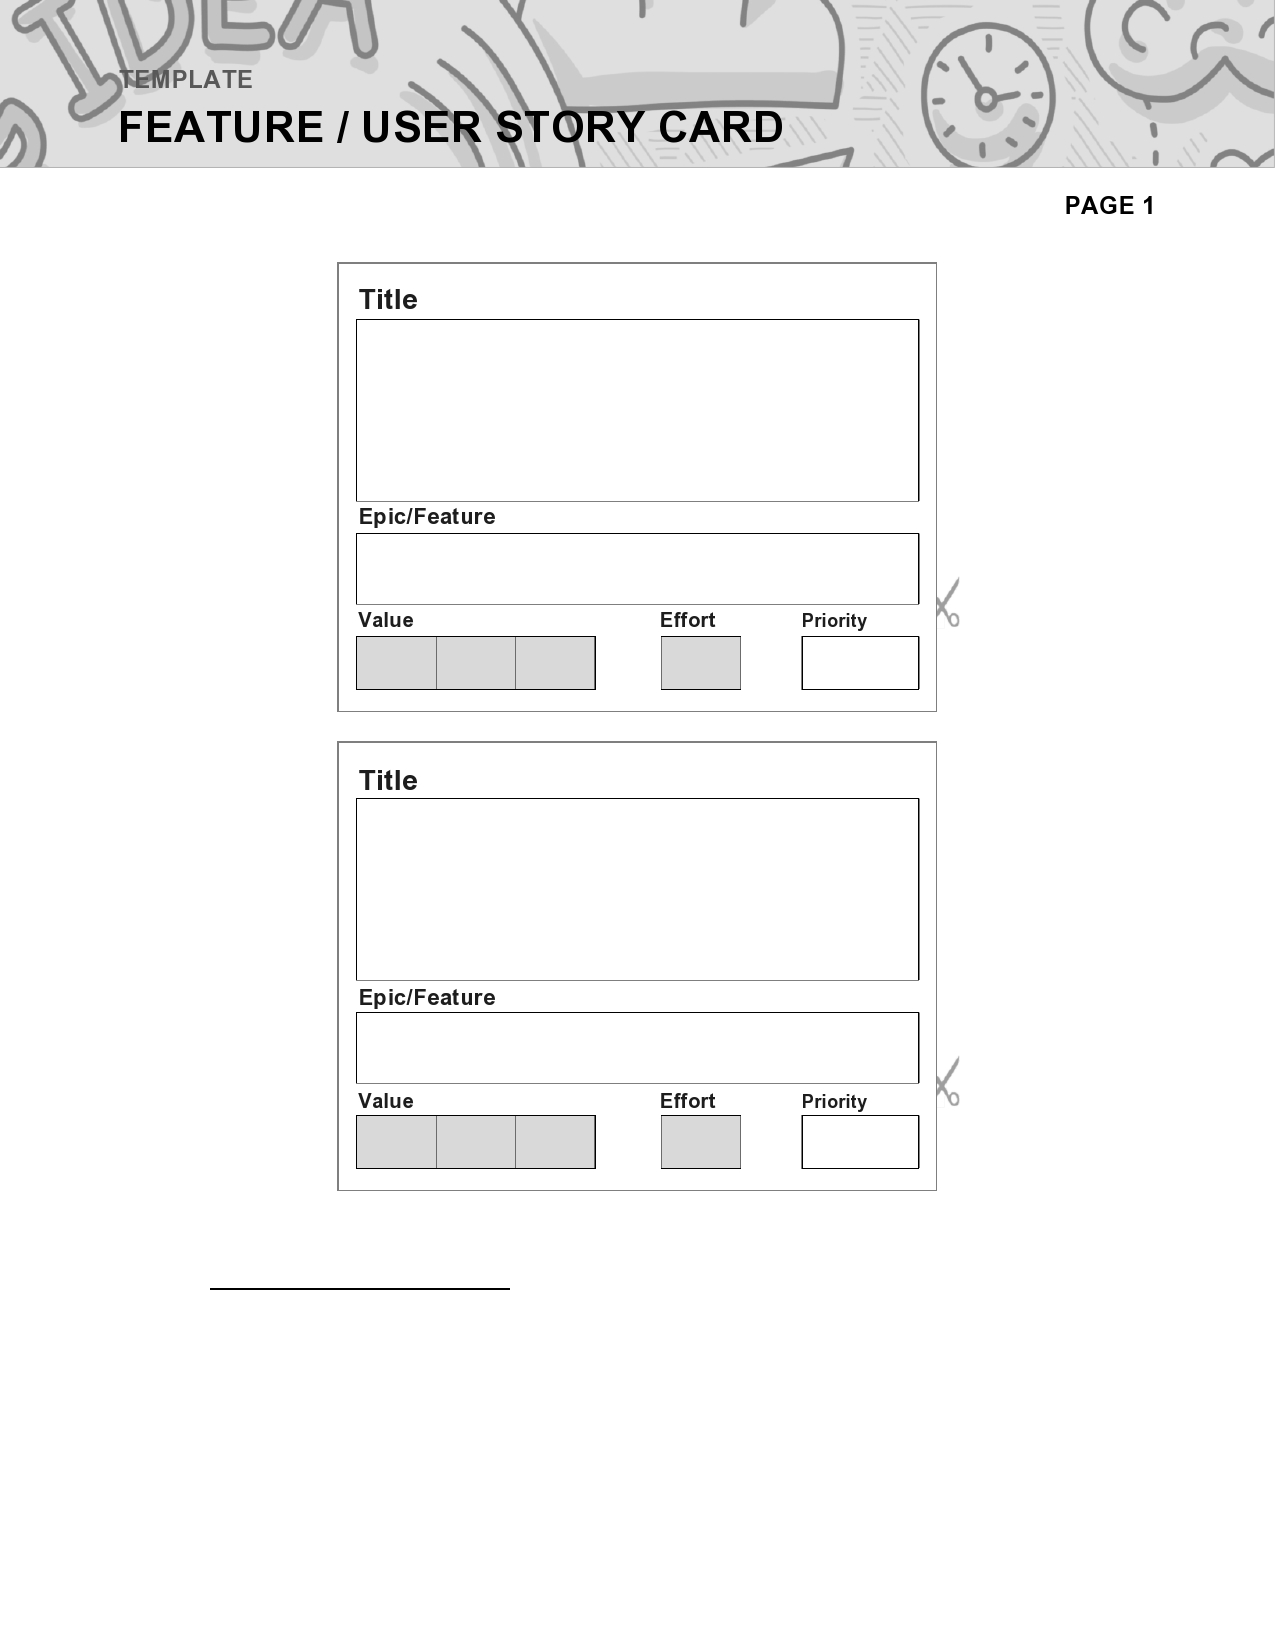 Free user story template 15